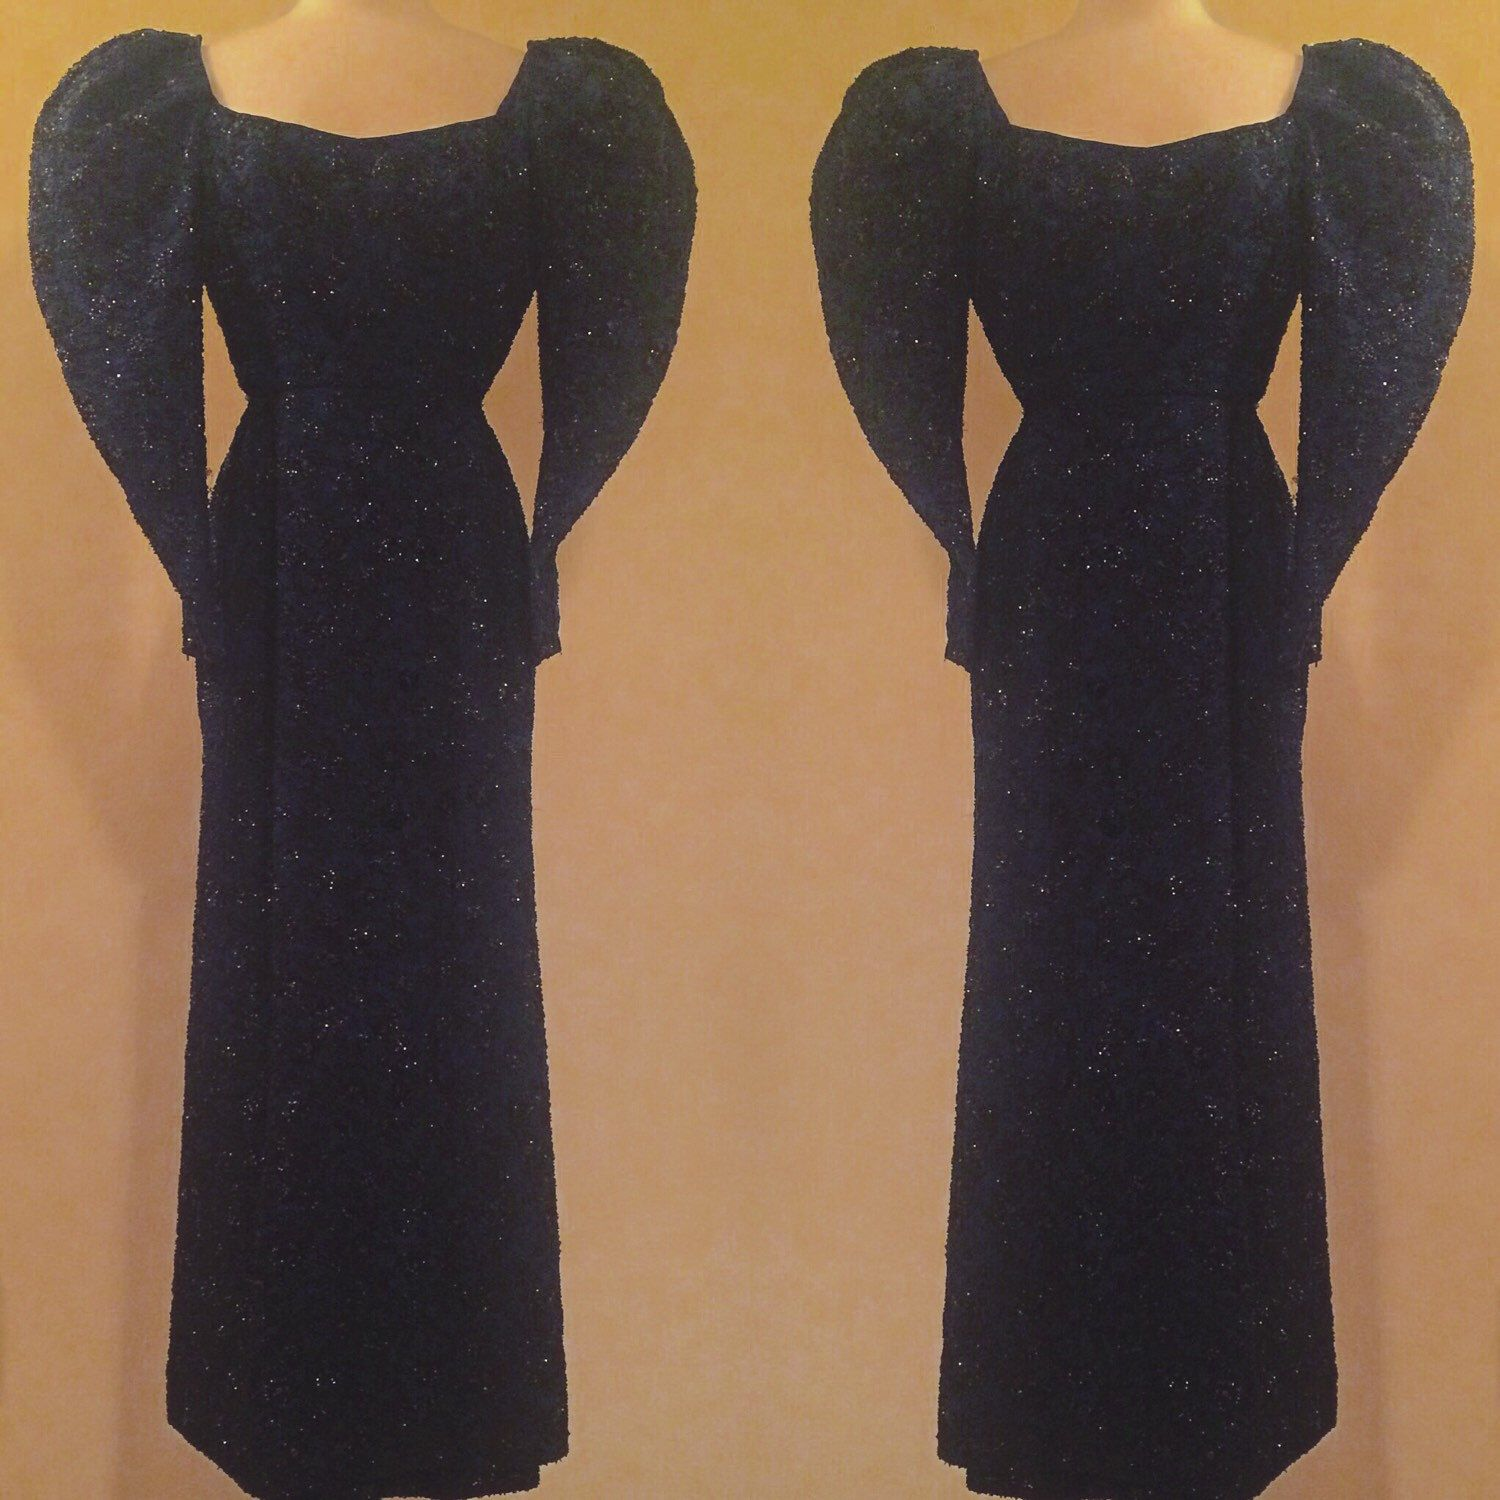 RESERVED! Do NOT buy!!!Couture Late 1930s Early 1940s Beaded Sequined Evening Gown/ Dress Midnight Blue and Black, Puff Sleeves, Zipper Wris by SelkieVintage on Etsy https://www.etsy.com/listing/262010031/reserved-do-not-buycouture-late-1930s